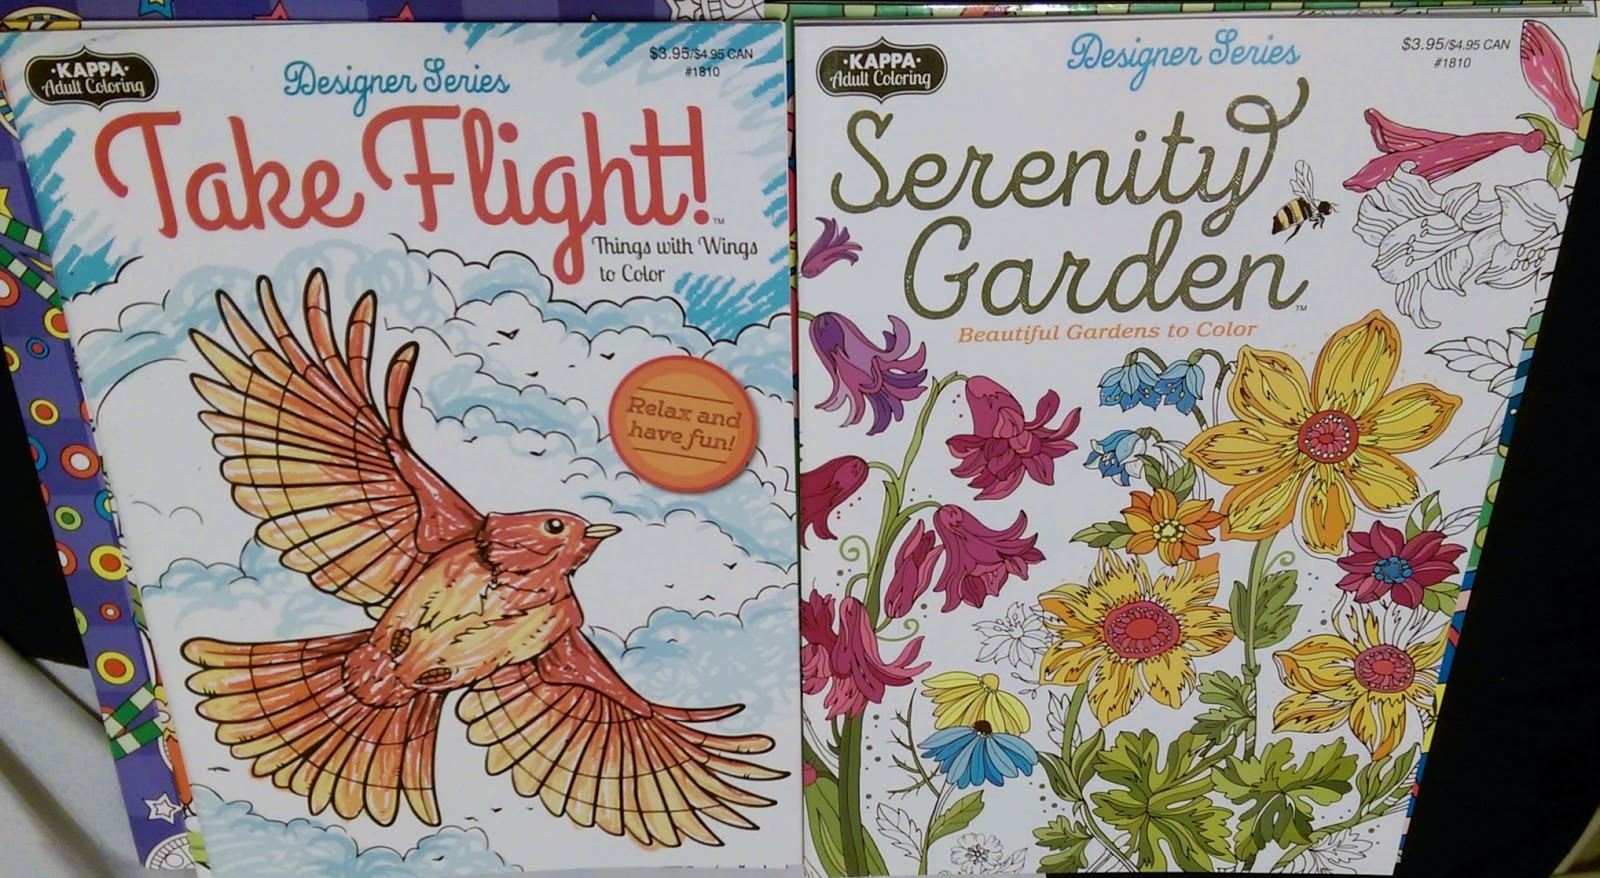 Take Flight And Serenity Garden Coloring Books For Adults At Dollar Tree